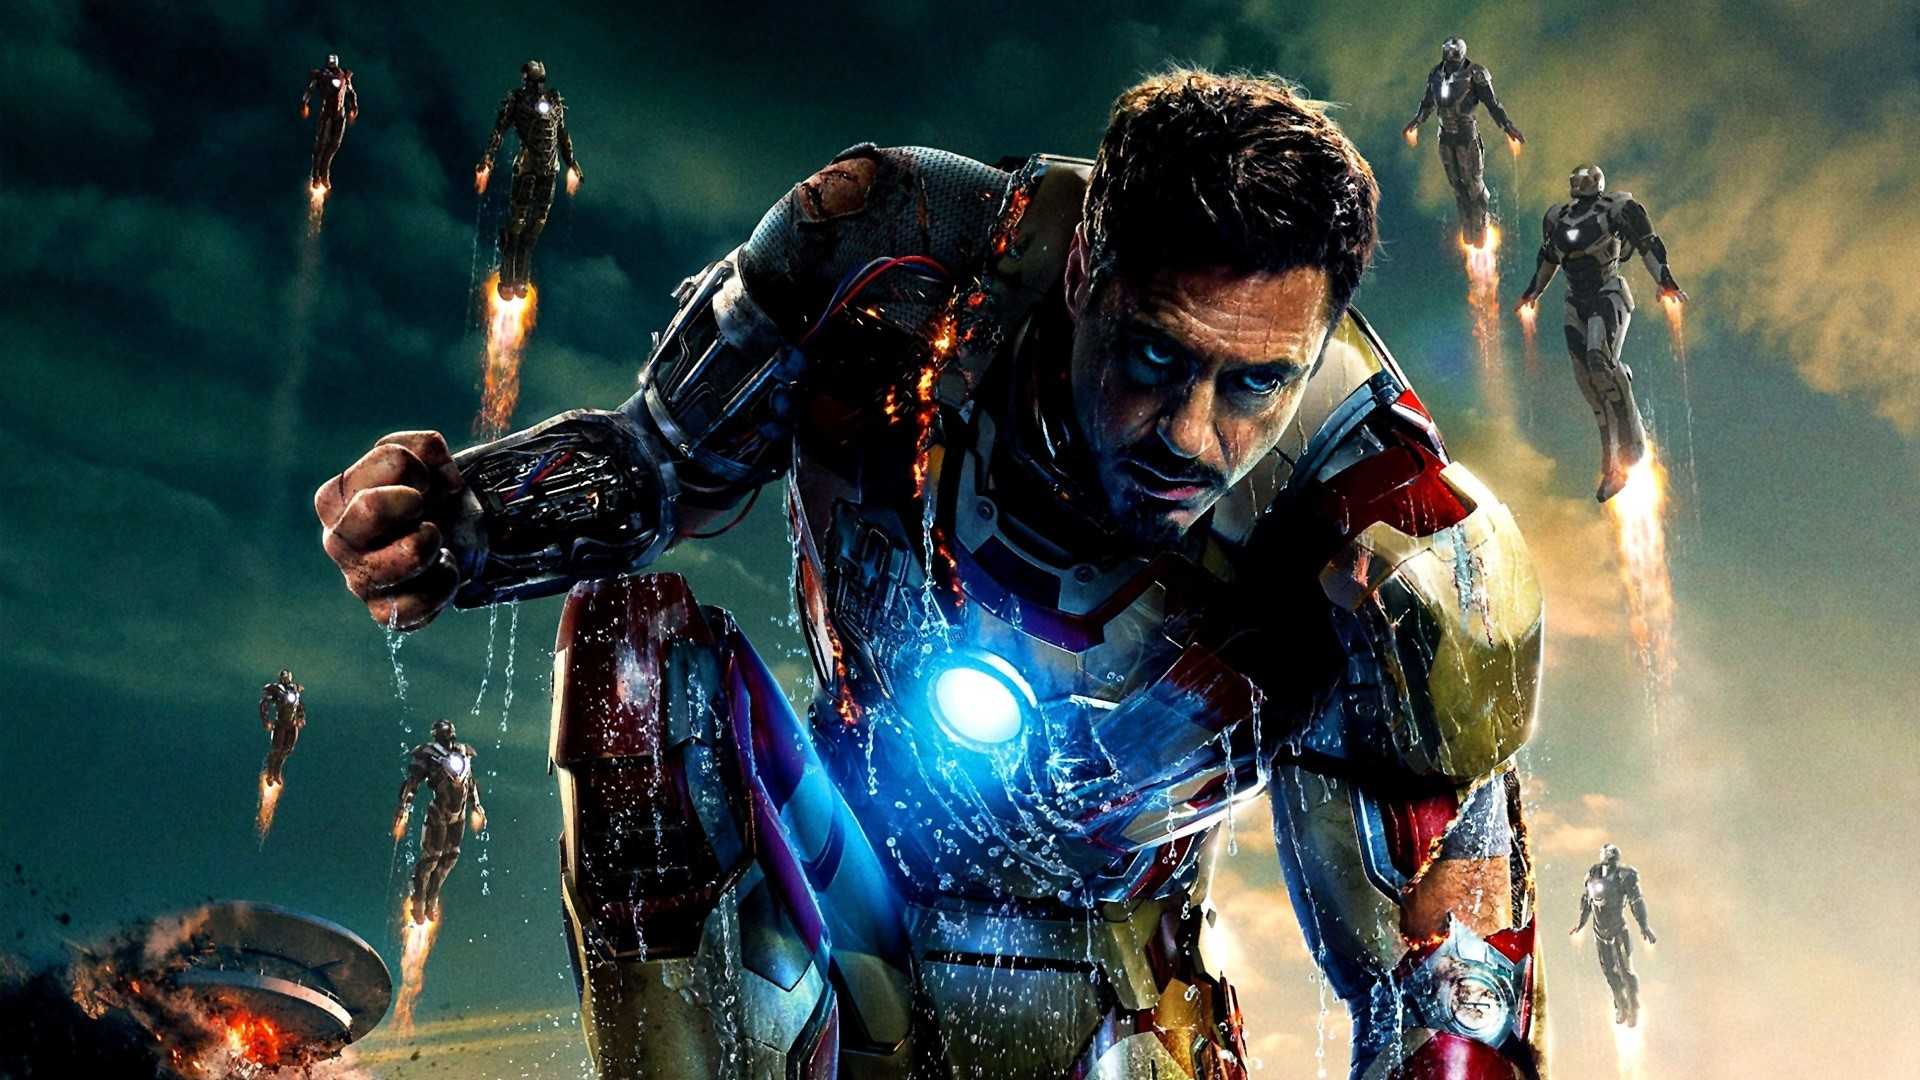 1920x1080 Iron Man Wallpapers in Best  px Resolutions | Brittani Noggle  AHDzBooK Wallpapers